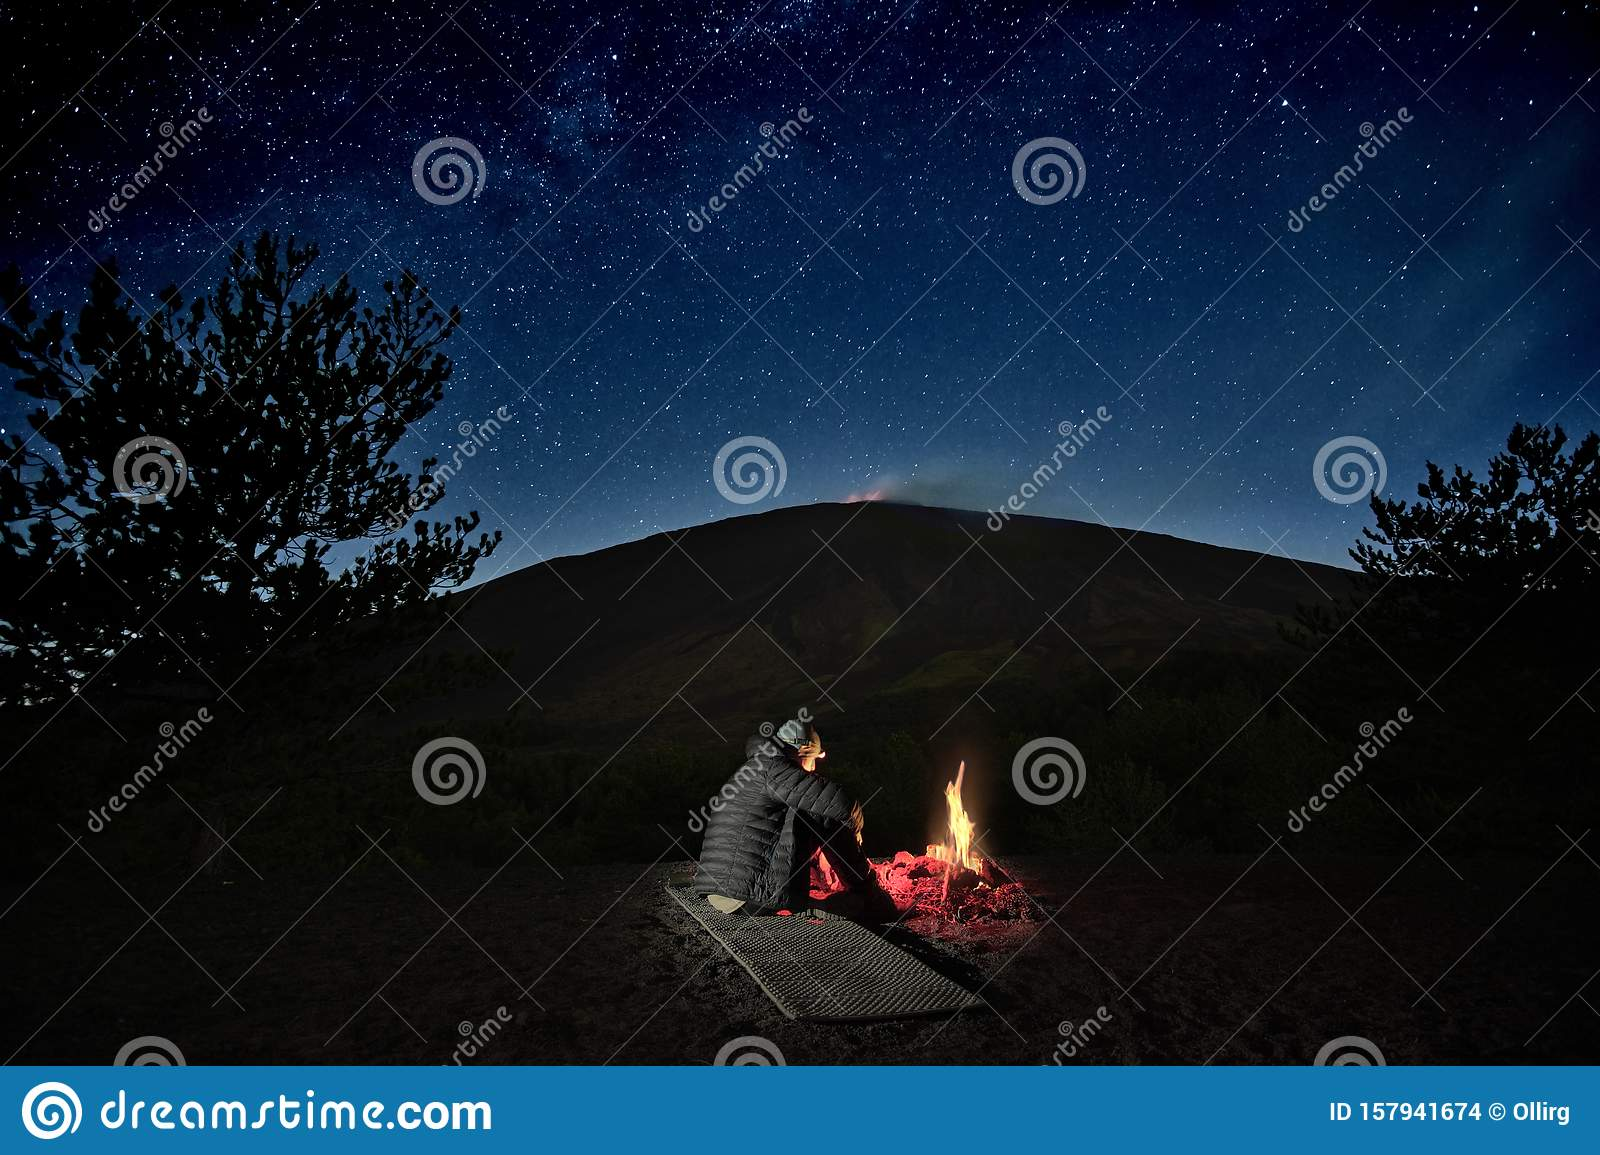 Man Near Campfire Under Etna Volcano And Starry Sky, Sicily